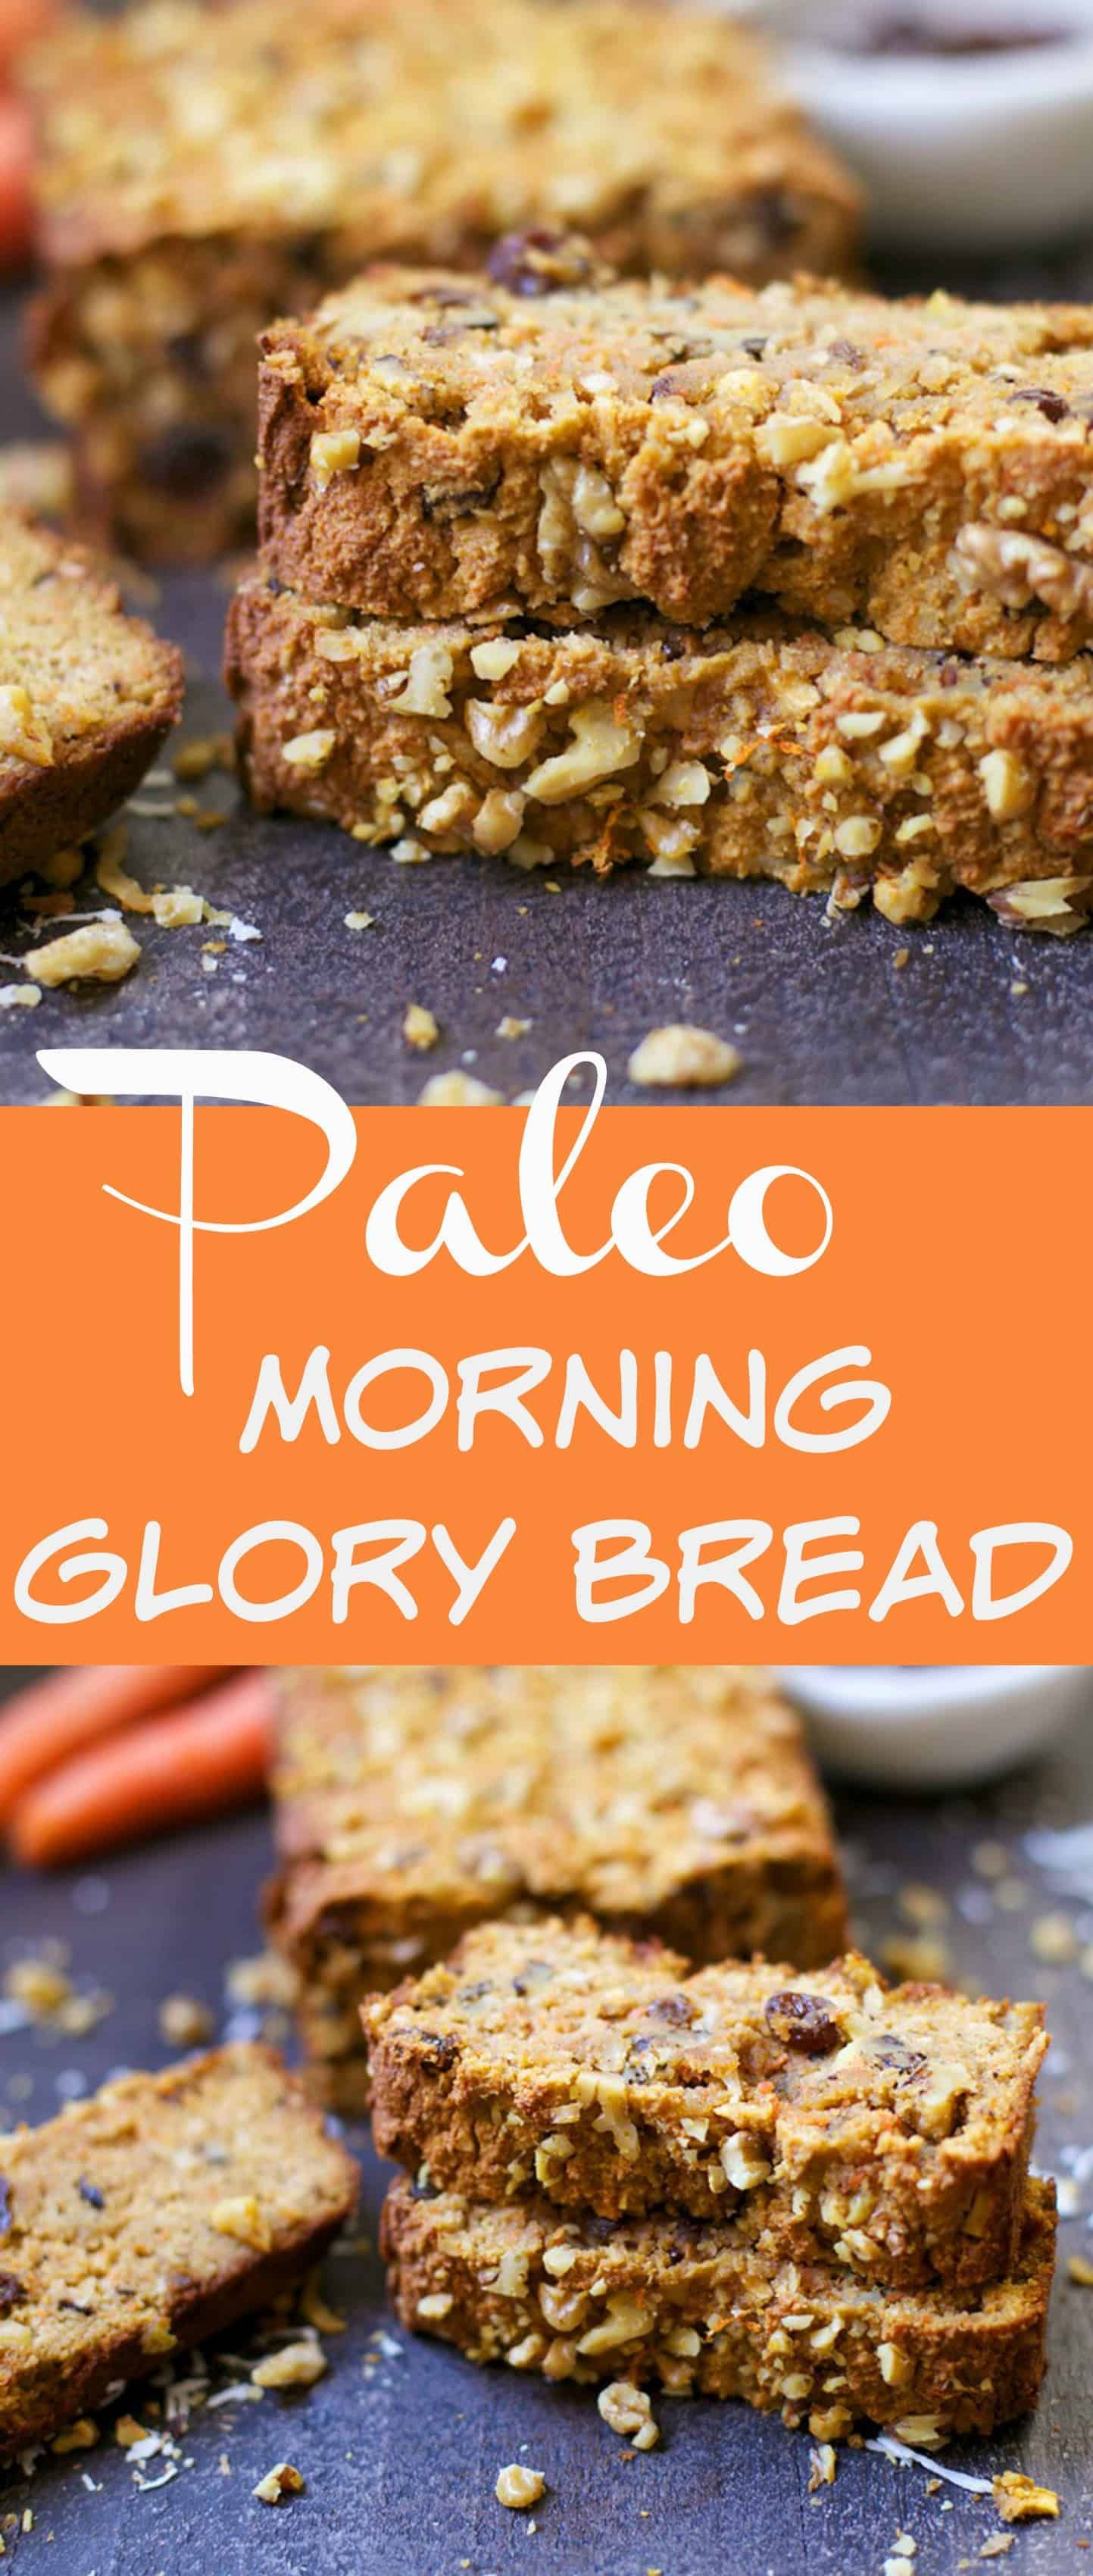 You'll love the moist and dense flavor of this Morning Glory Bread! A perfect breakfast or snack on the go, packed with apples, coconut, carrots, raisins, and walnuts. This bread is grain-free, refined sugar free, and oh so delicious! I would like to introduce you to your new favorite breakfast treat. I am super excited... Get the Recipe